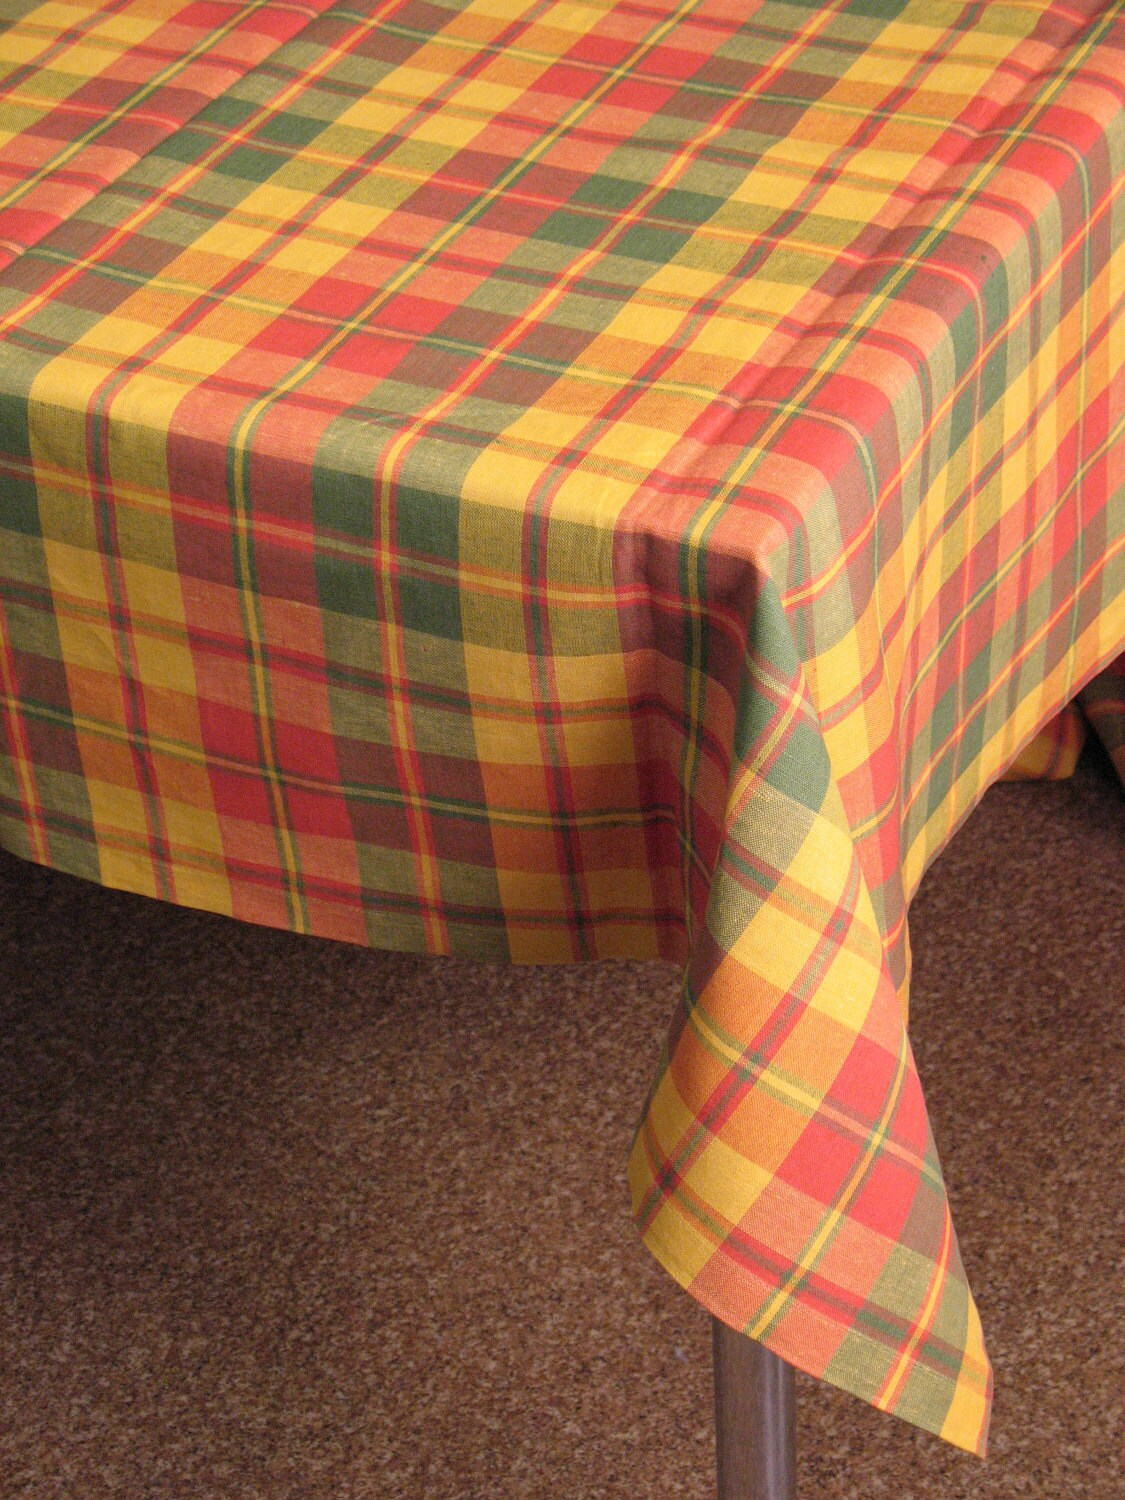 Checkered Cloth Tablecloth : Linen Tablecloth Checked Green Red Orange Yellow by Initasworks